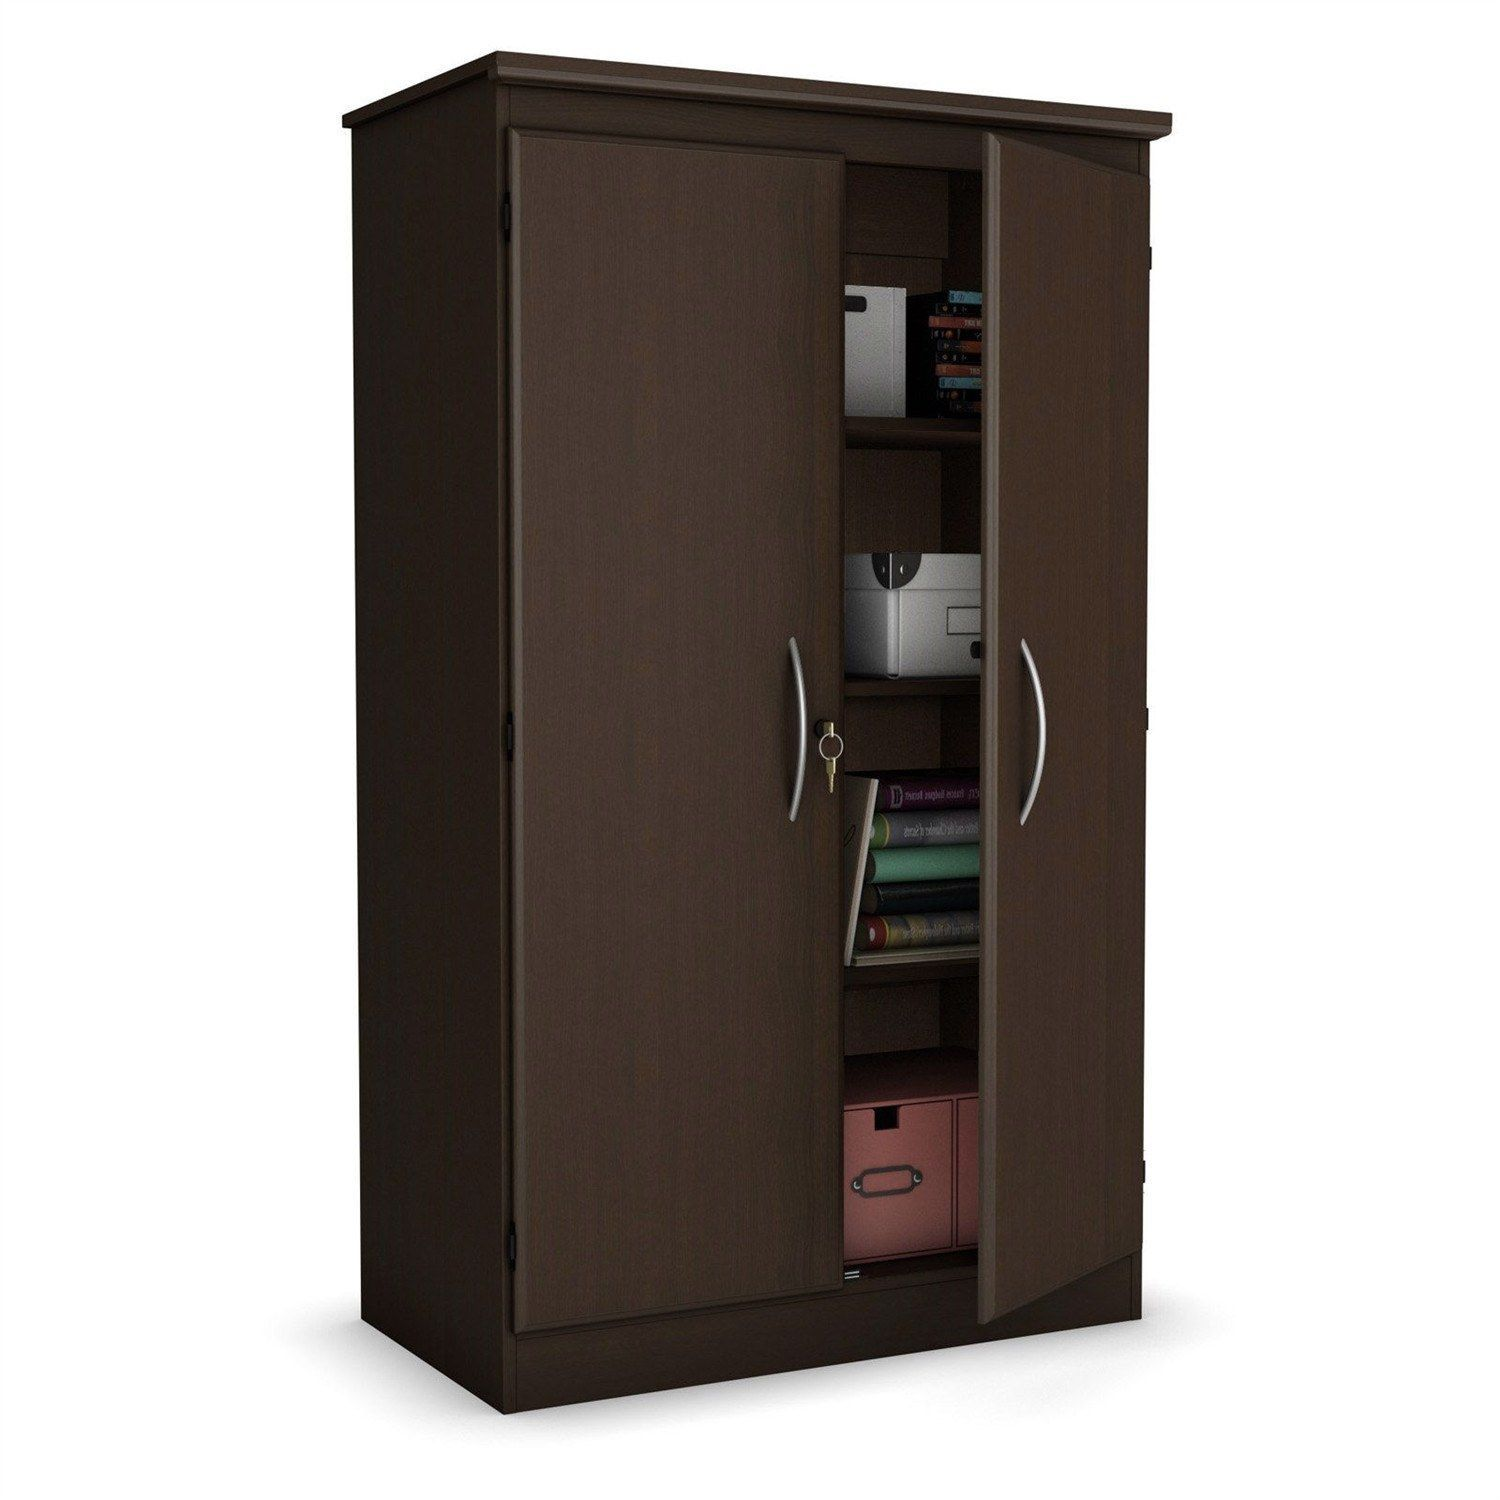 5 Ft Storage Cabinet Wardrobe Armoire for Bedroom fice or Garage